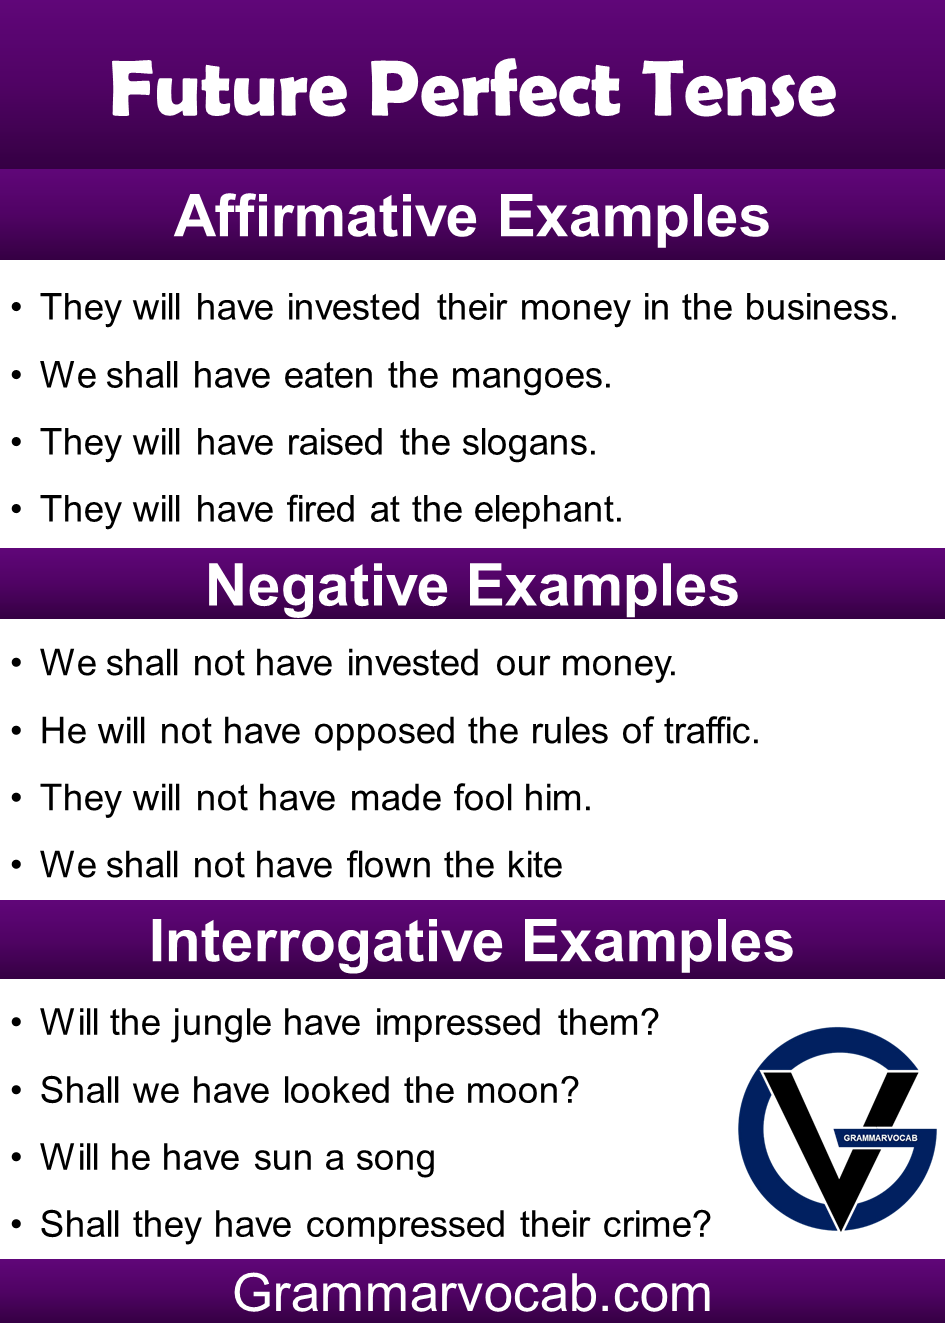 Future Perfect Tense Examples